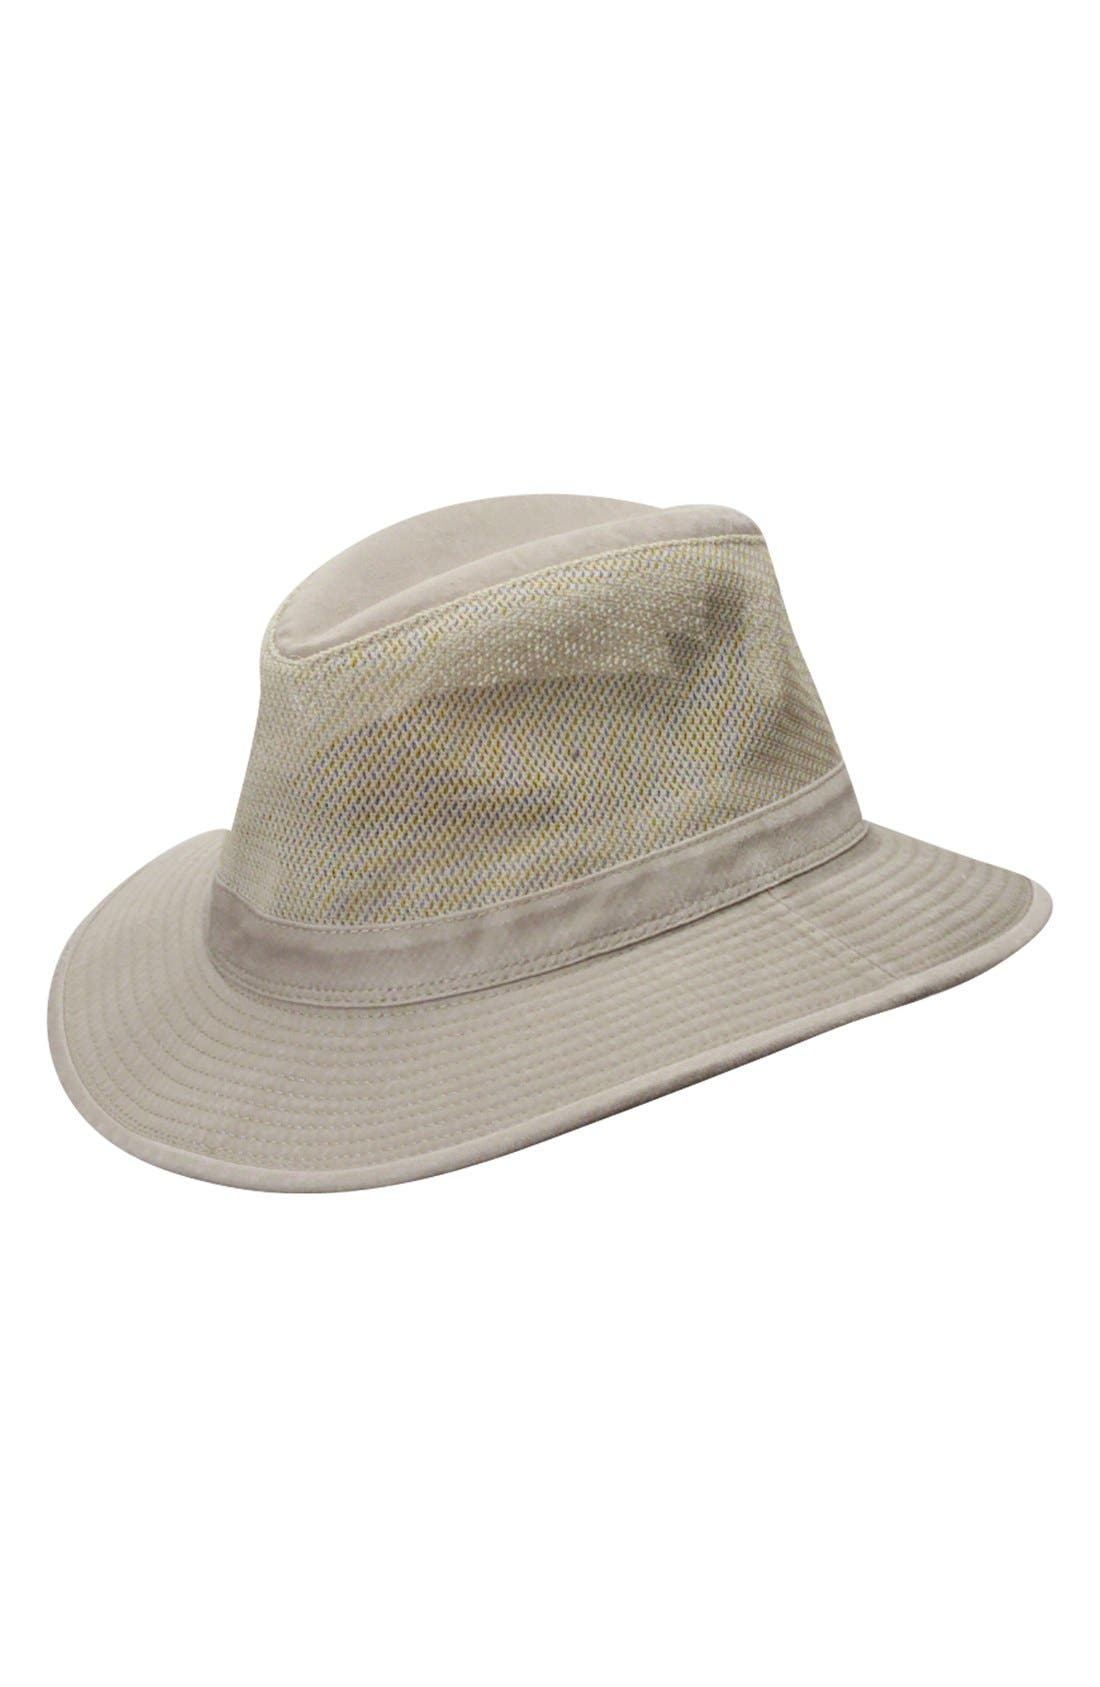 Alternate Image 1 Selected - Dorfman Pacific Washed Twill & Mesh Safari Hat